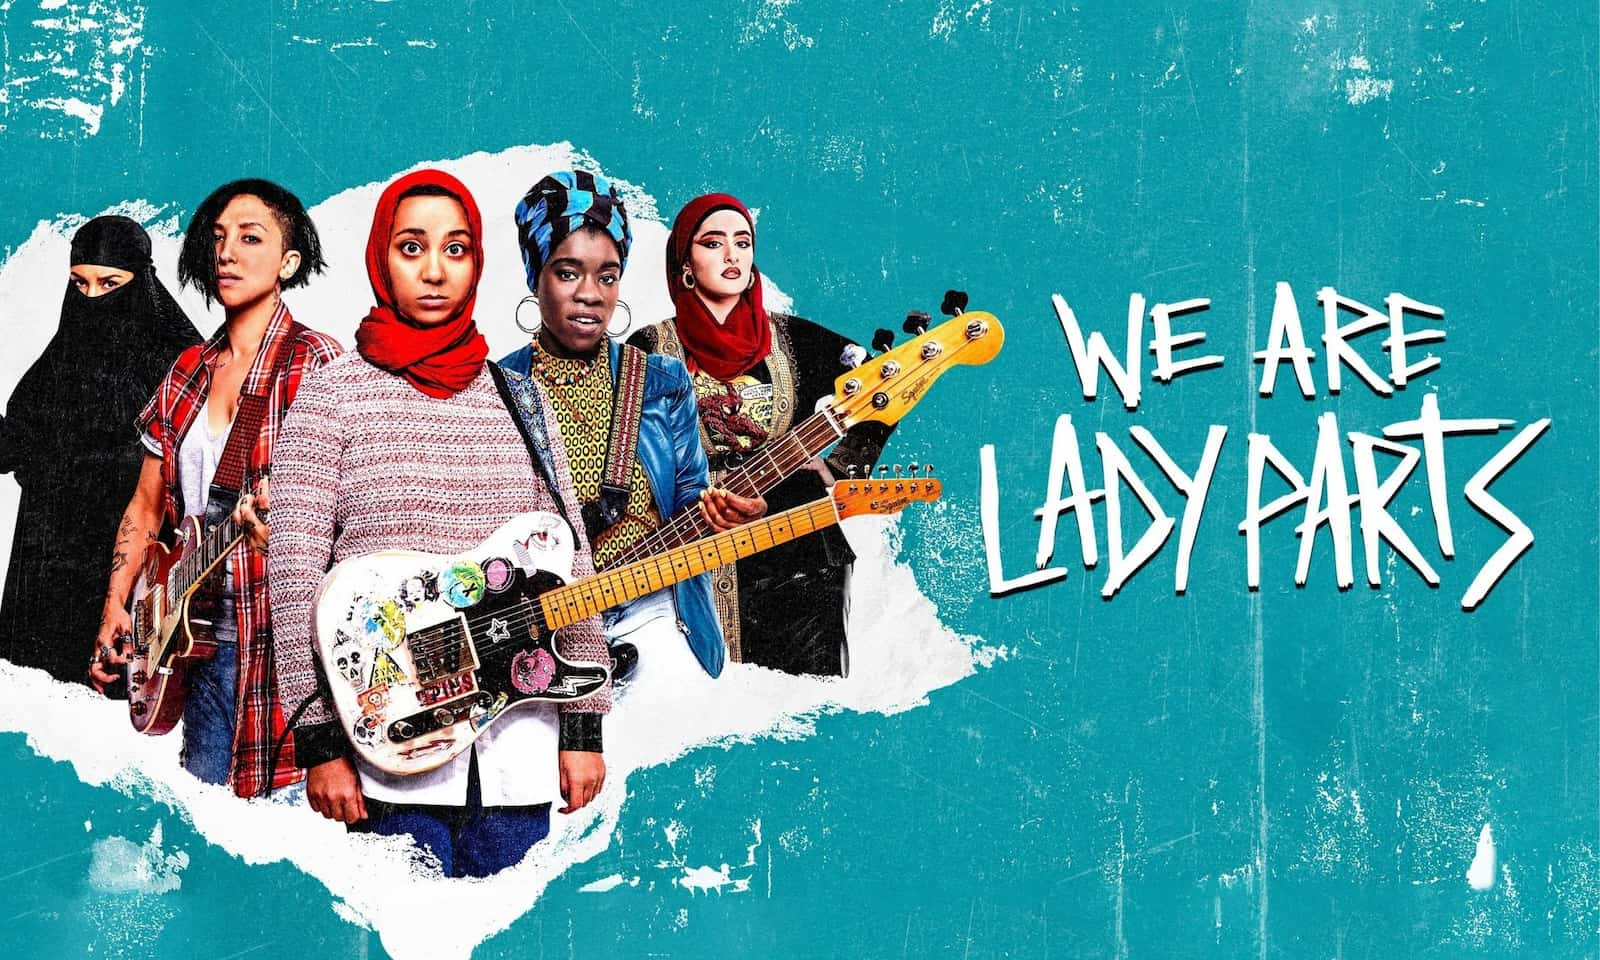 'We Are Lady Parts': When Fierce, Queer and Muslim Women Play Punk Rock